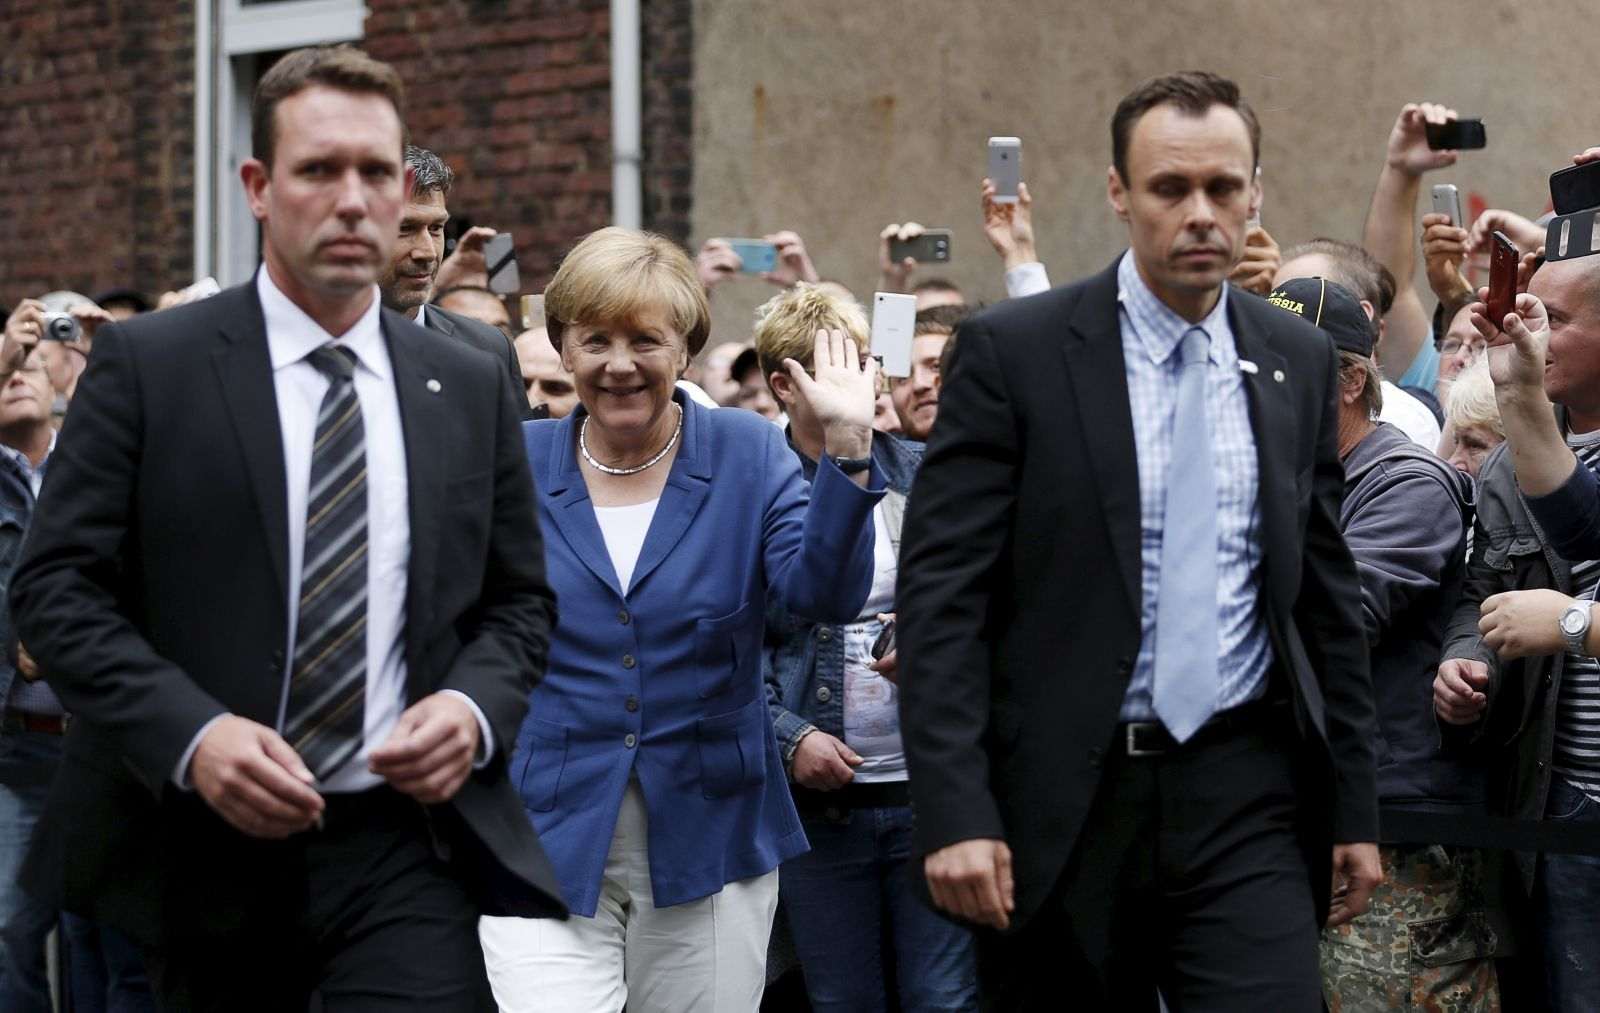 Angel Merkel Booed by far-right